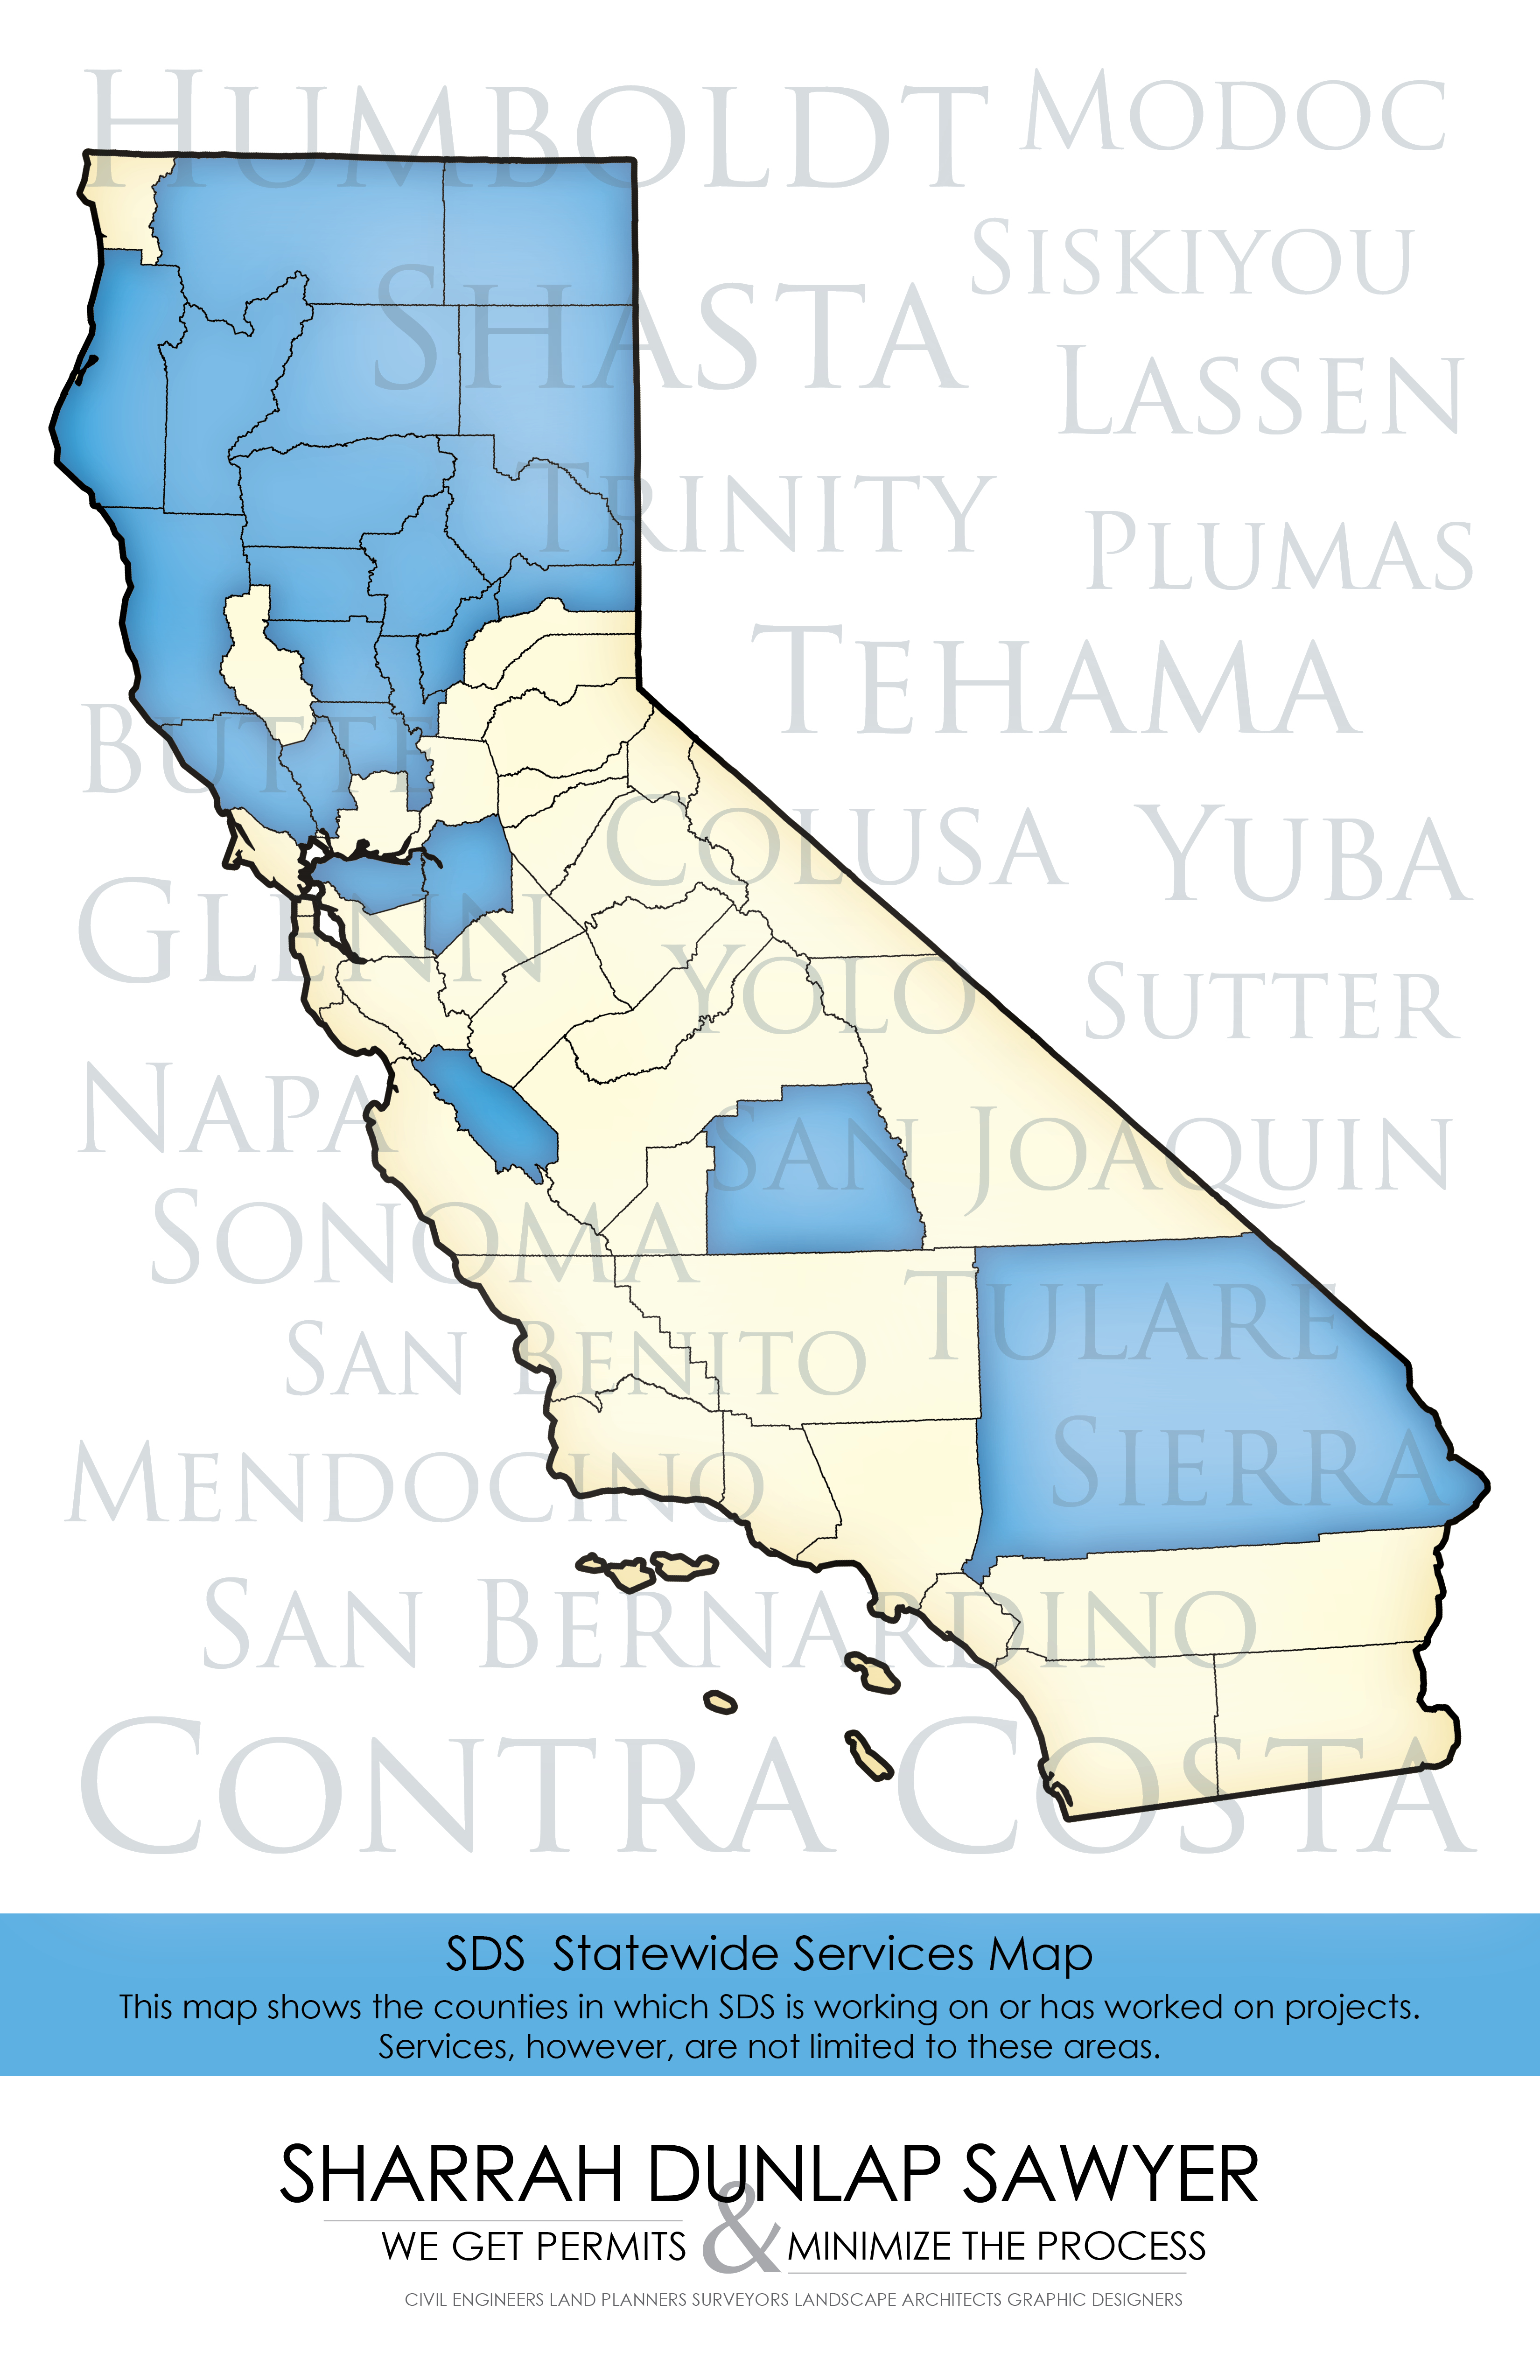 SDS Statewide Services Map - Firm Services Map